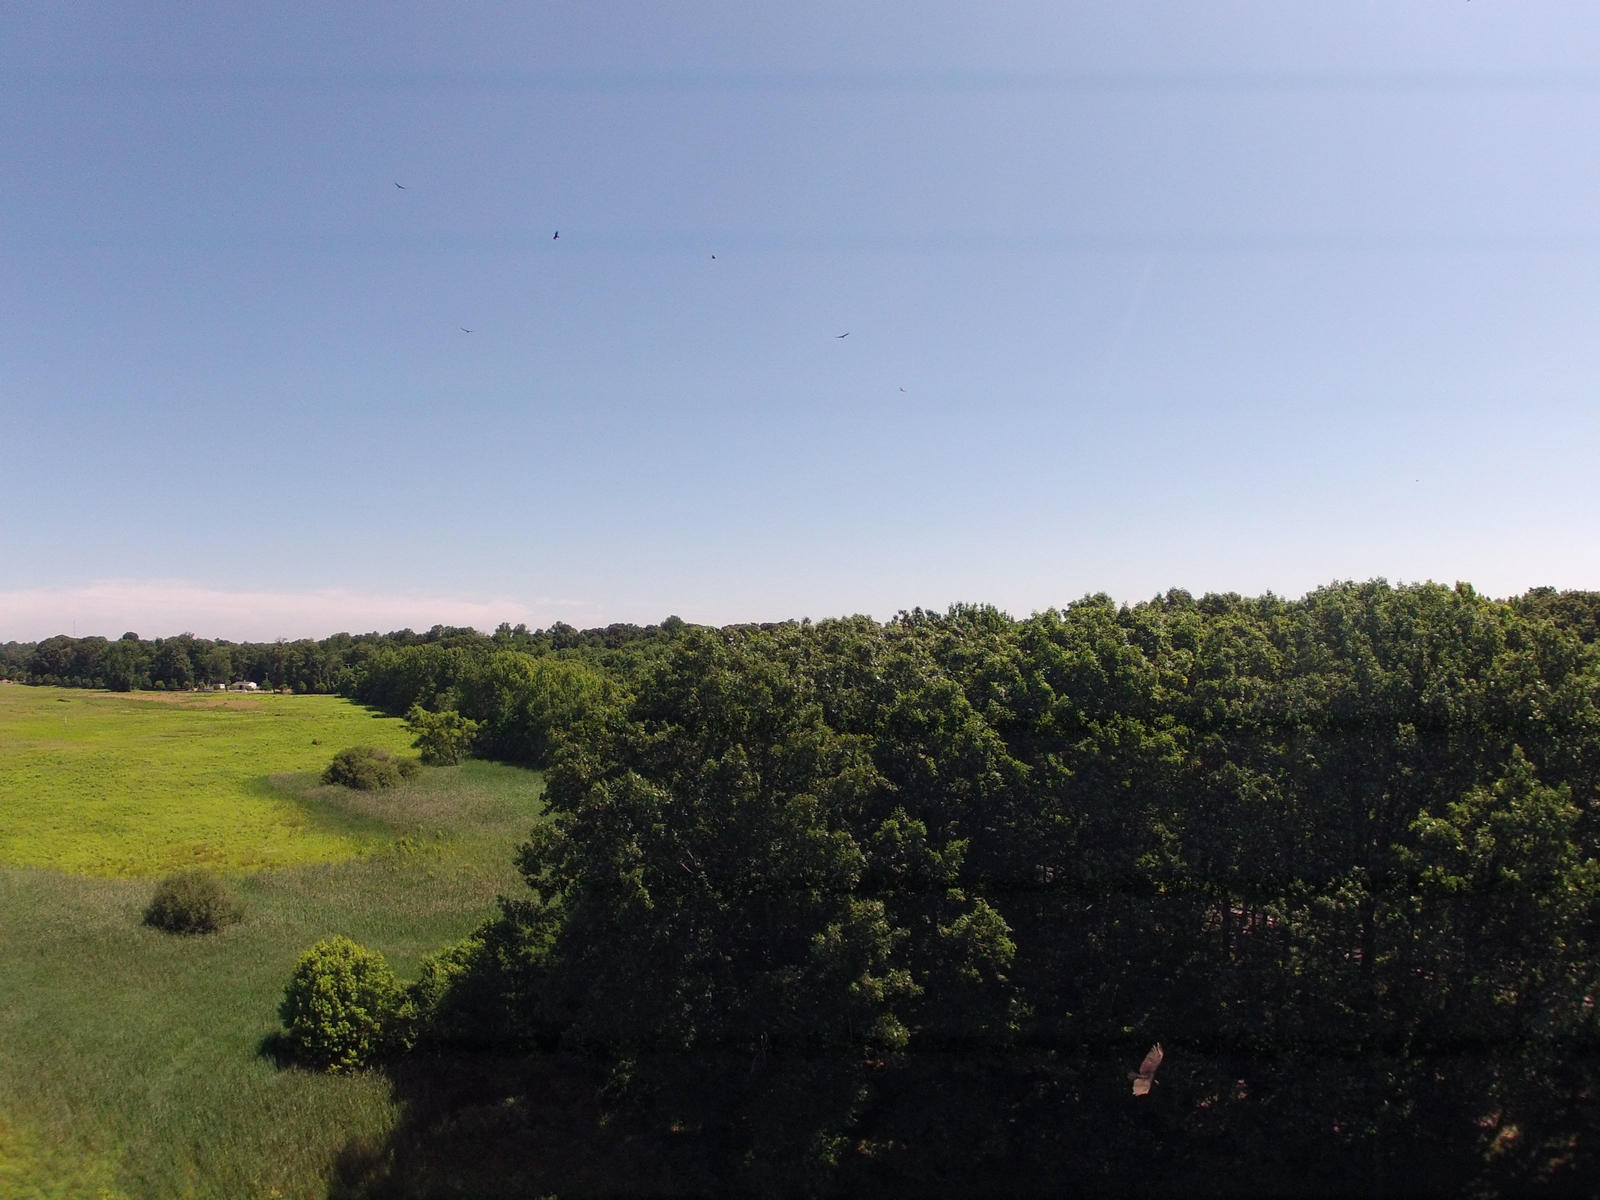 Half a dozen hawks circling upper center, but lower right corner is a big hawk investigating my DJI F450